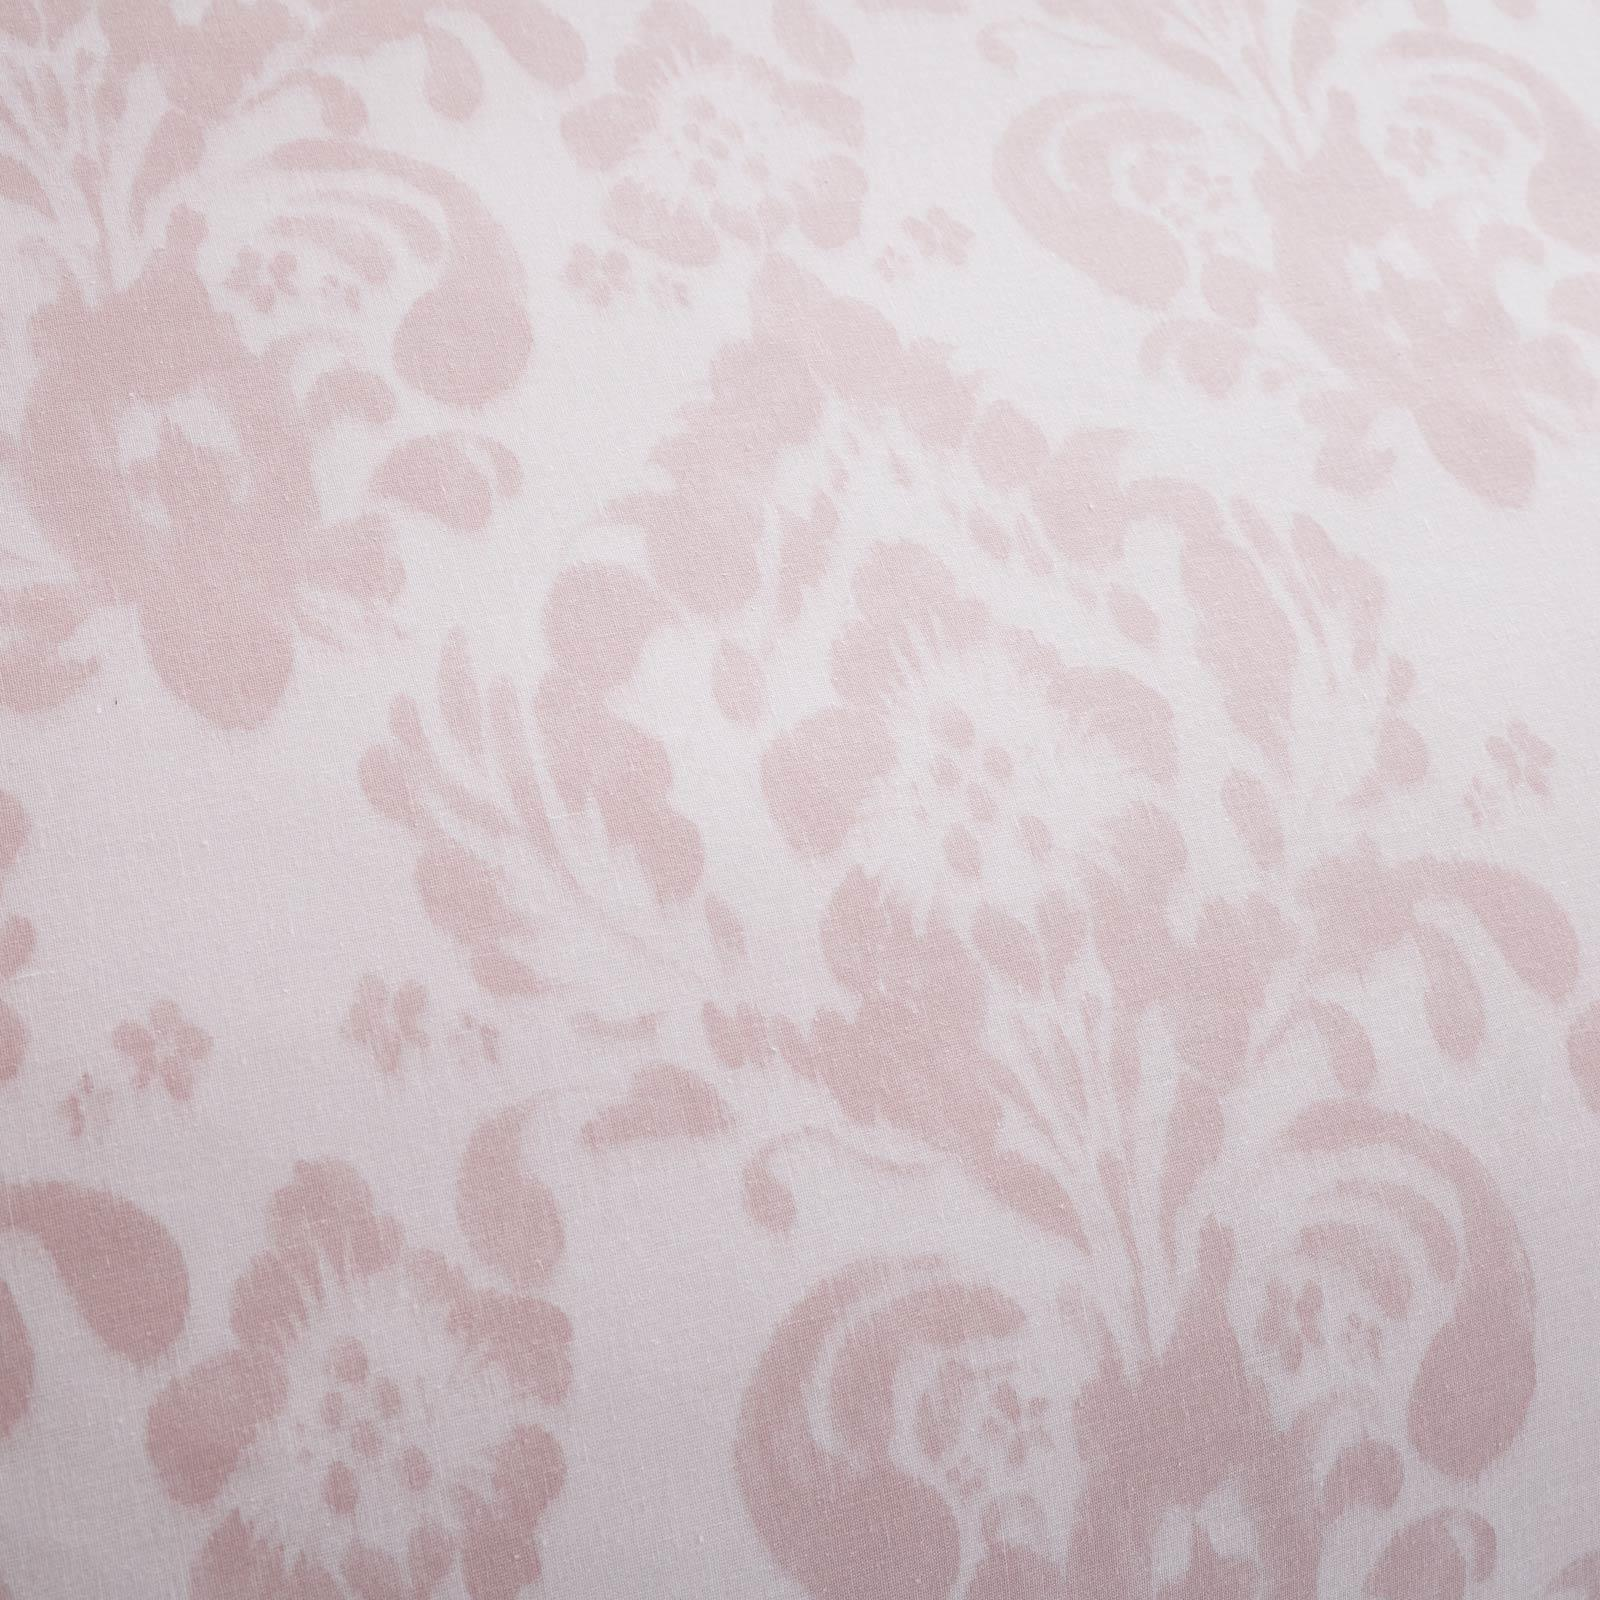 thumbnail 6 - Catherine Lansfield Damask Blush Duvet Covers Pink Grey Quilt Cover Bedding Sets